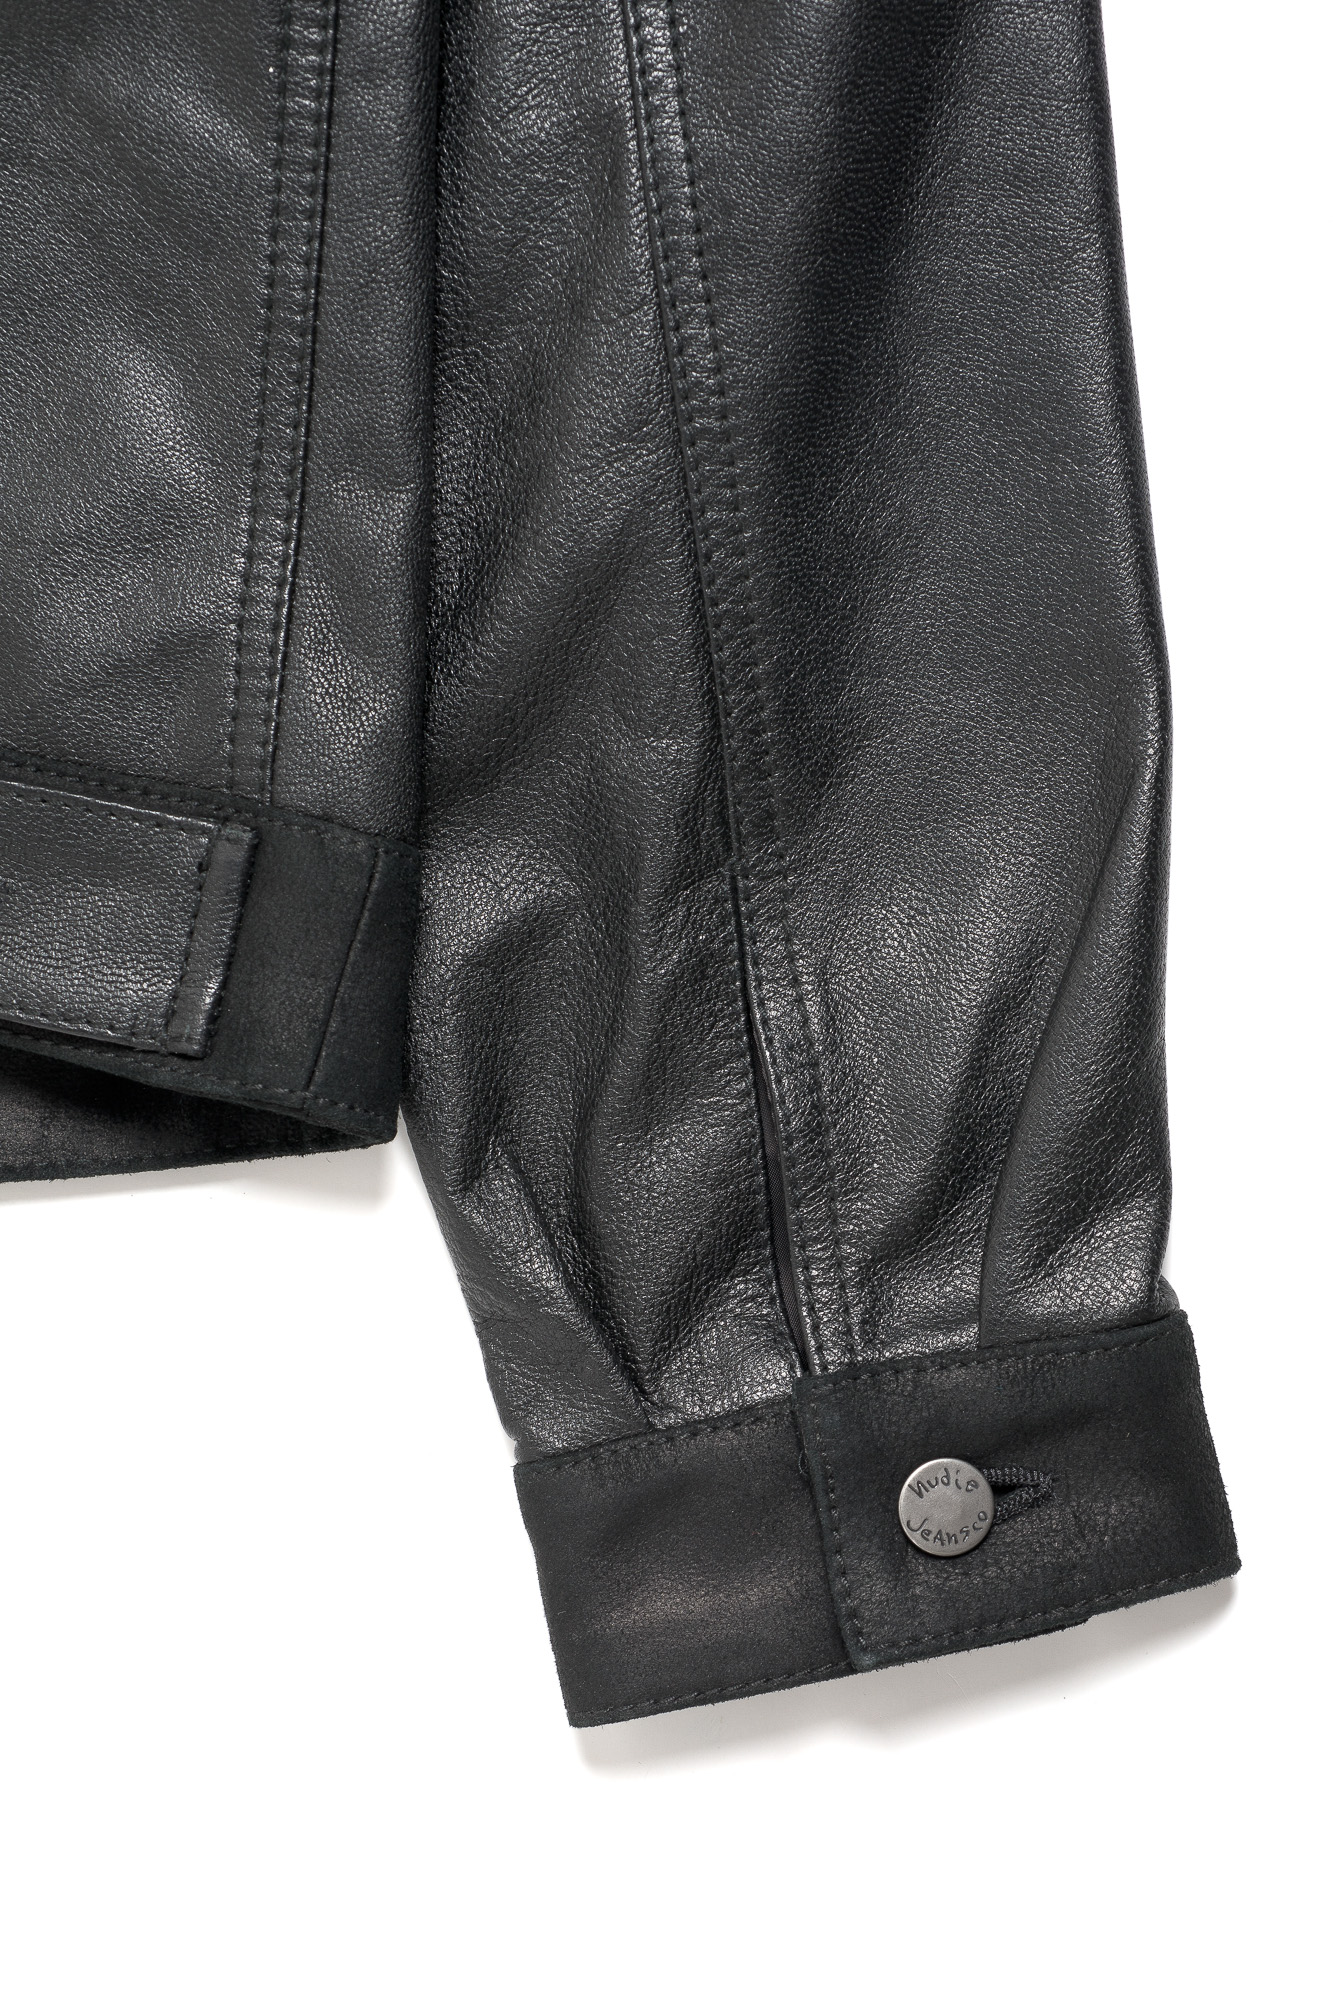 Perry Leather _ Crust Jkt Black 160339 13